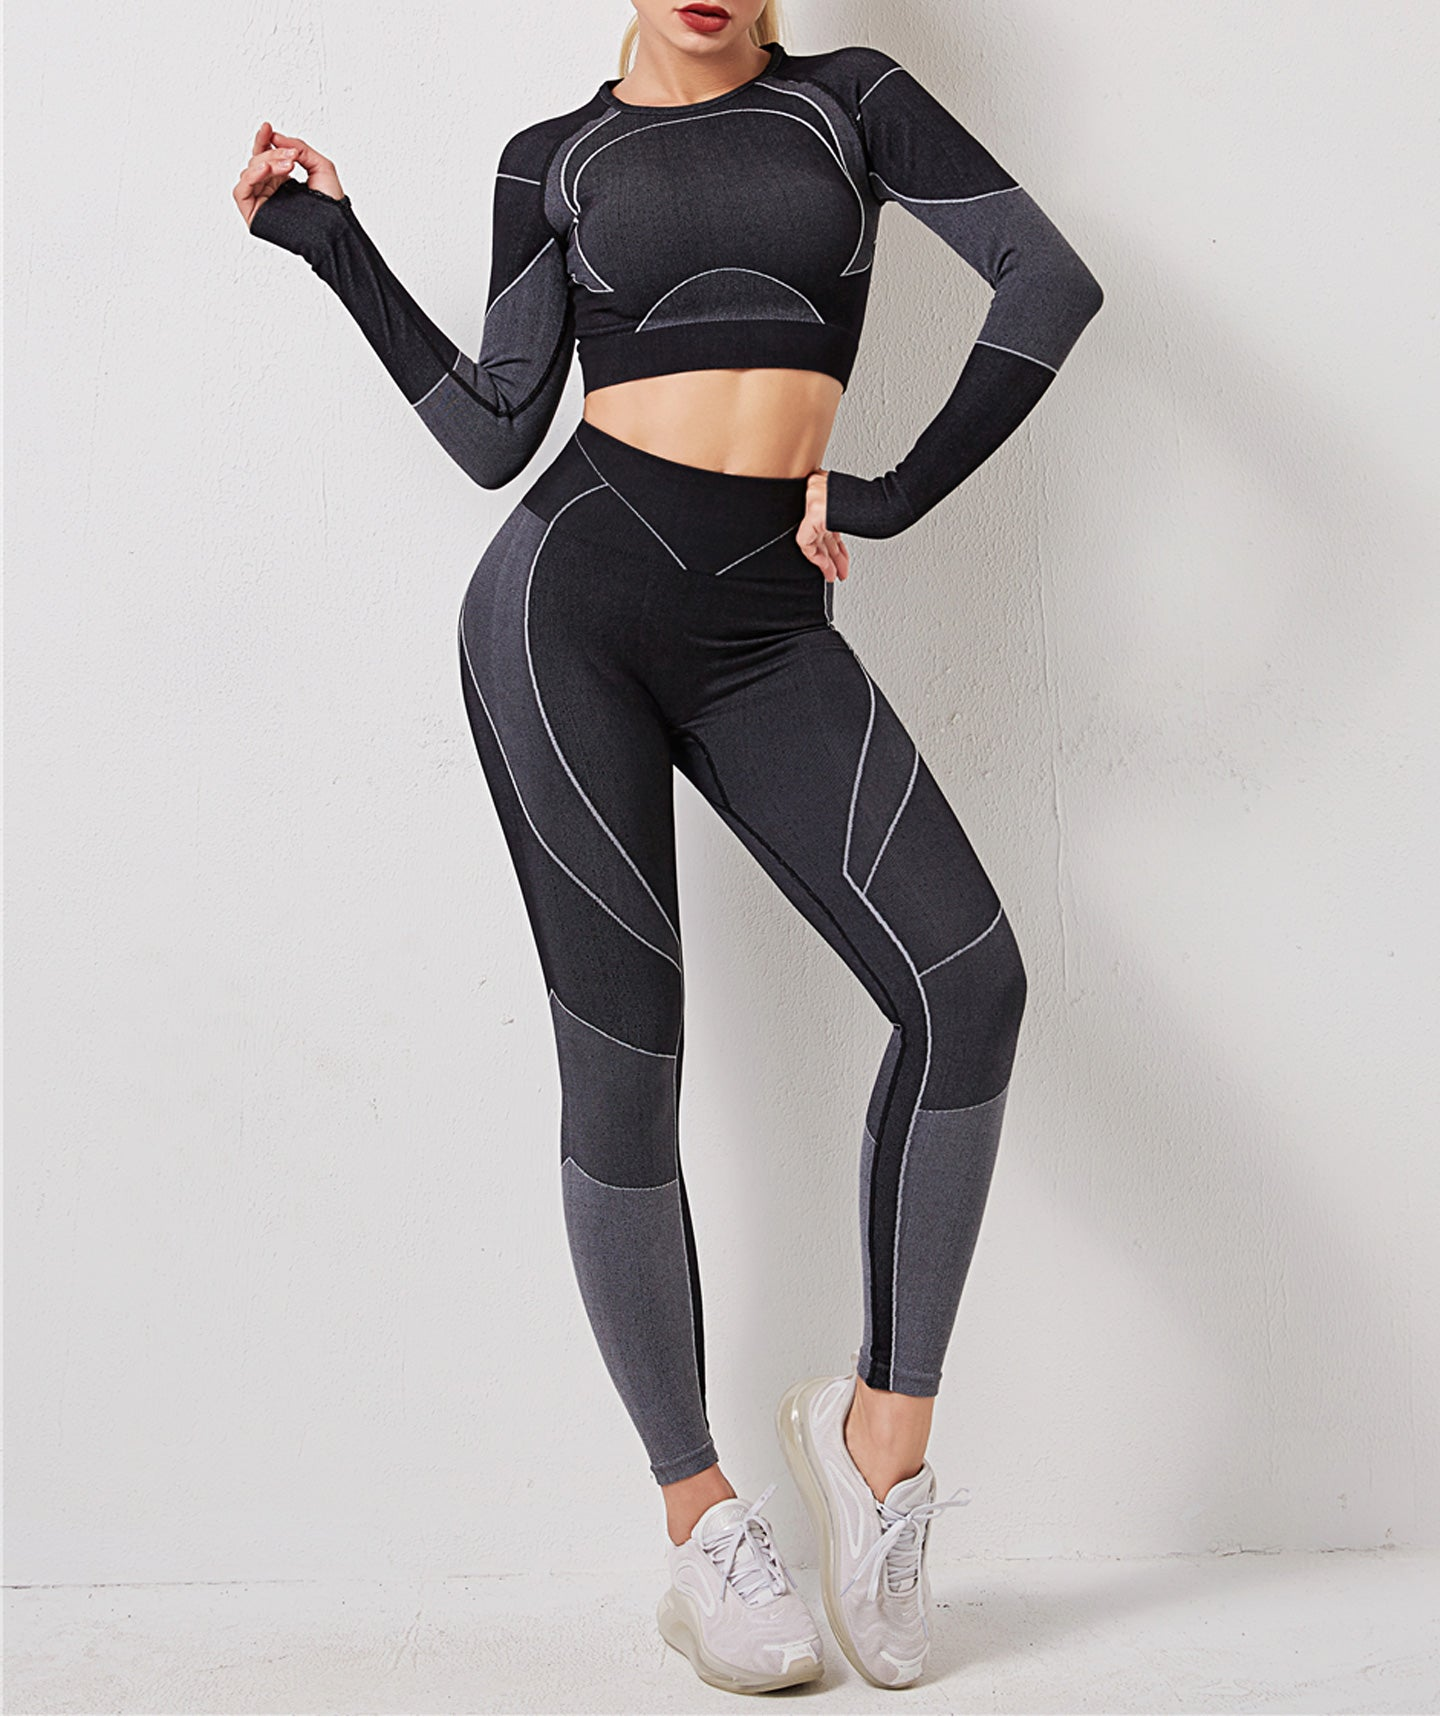 React Black Fitness Set